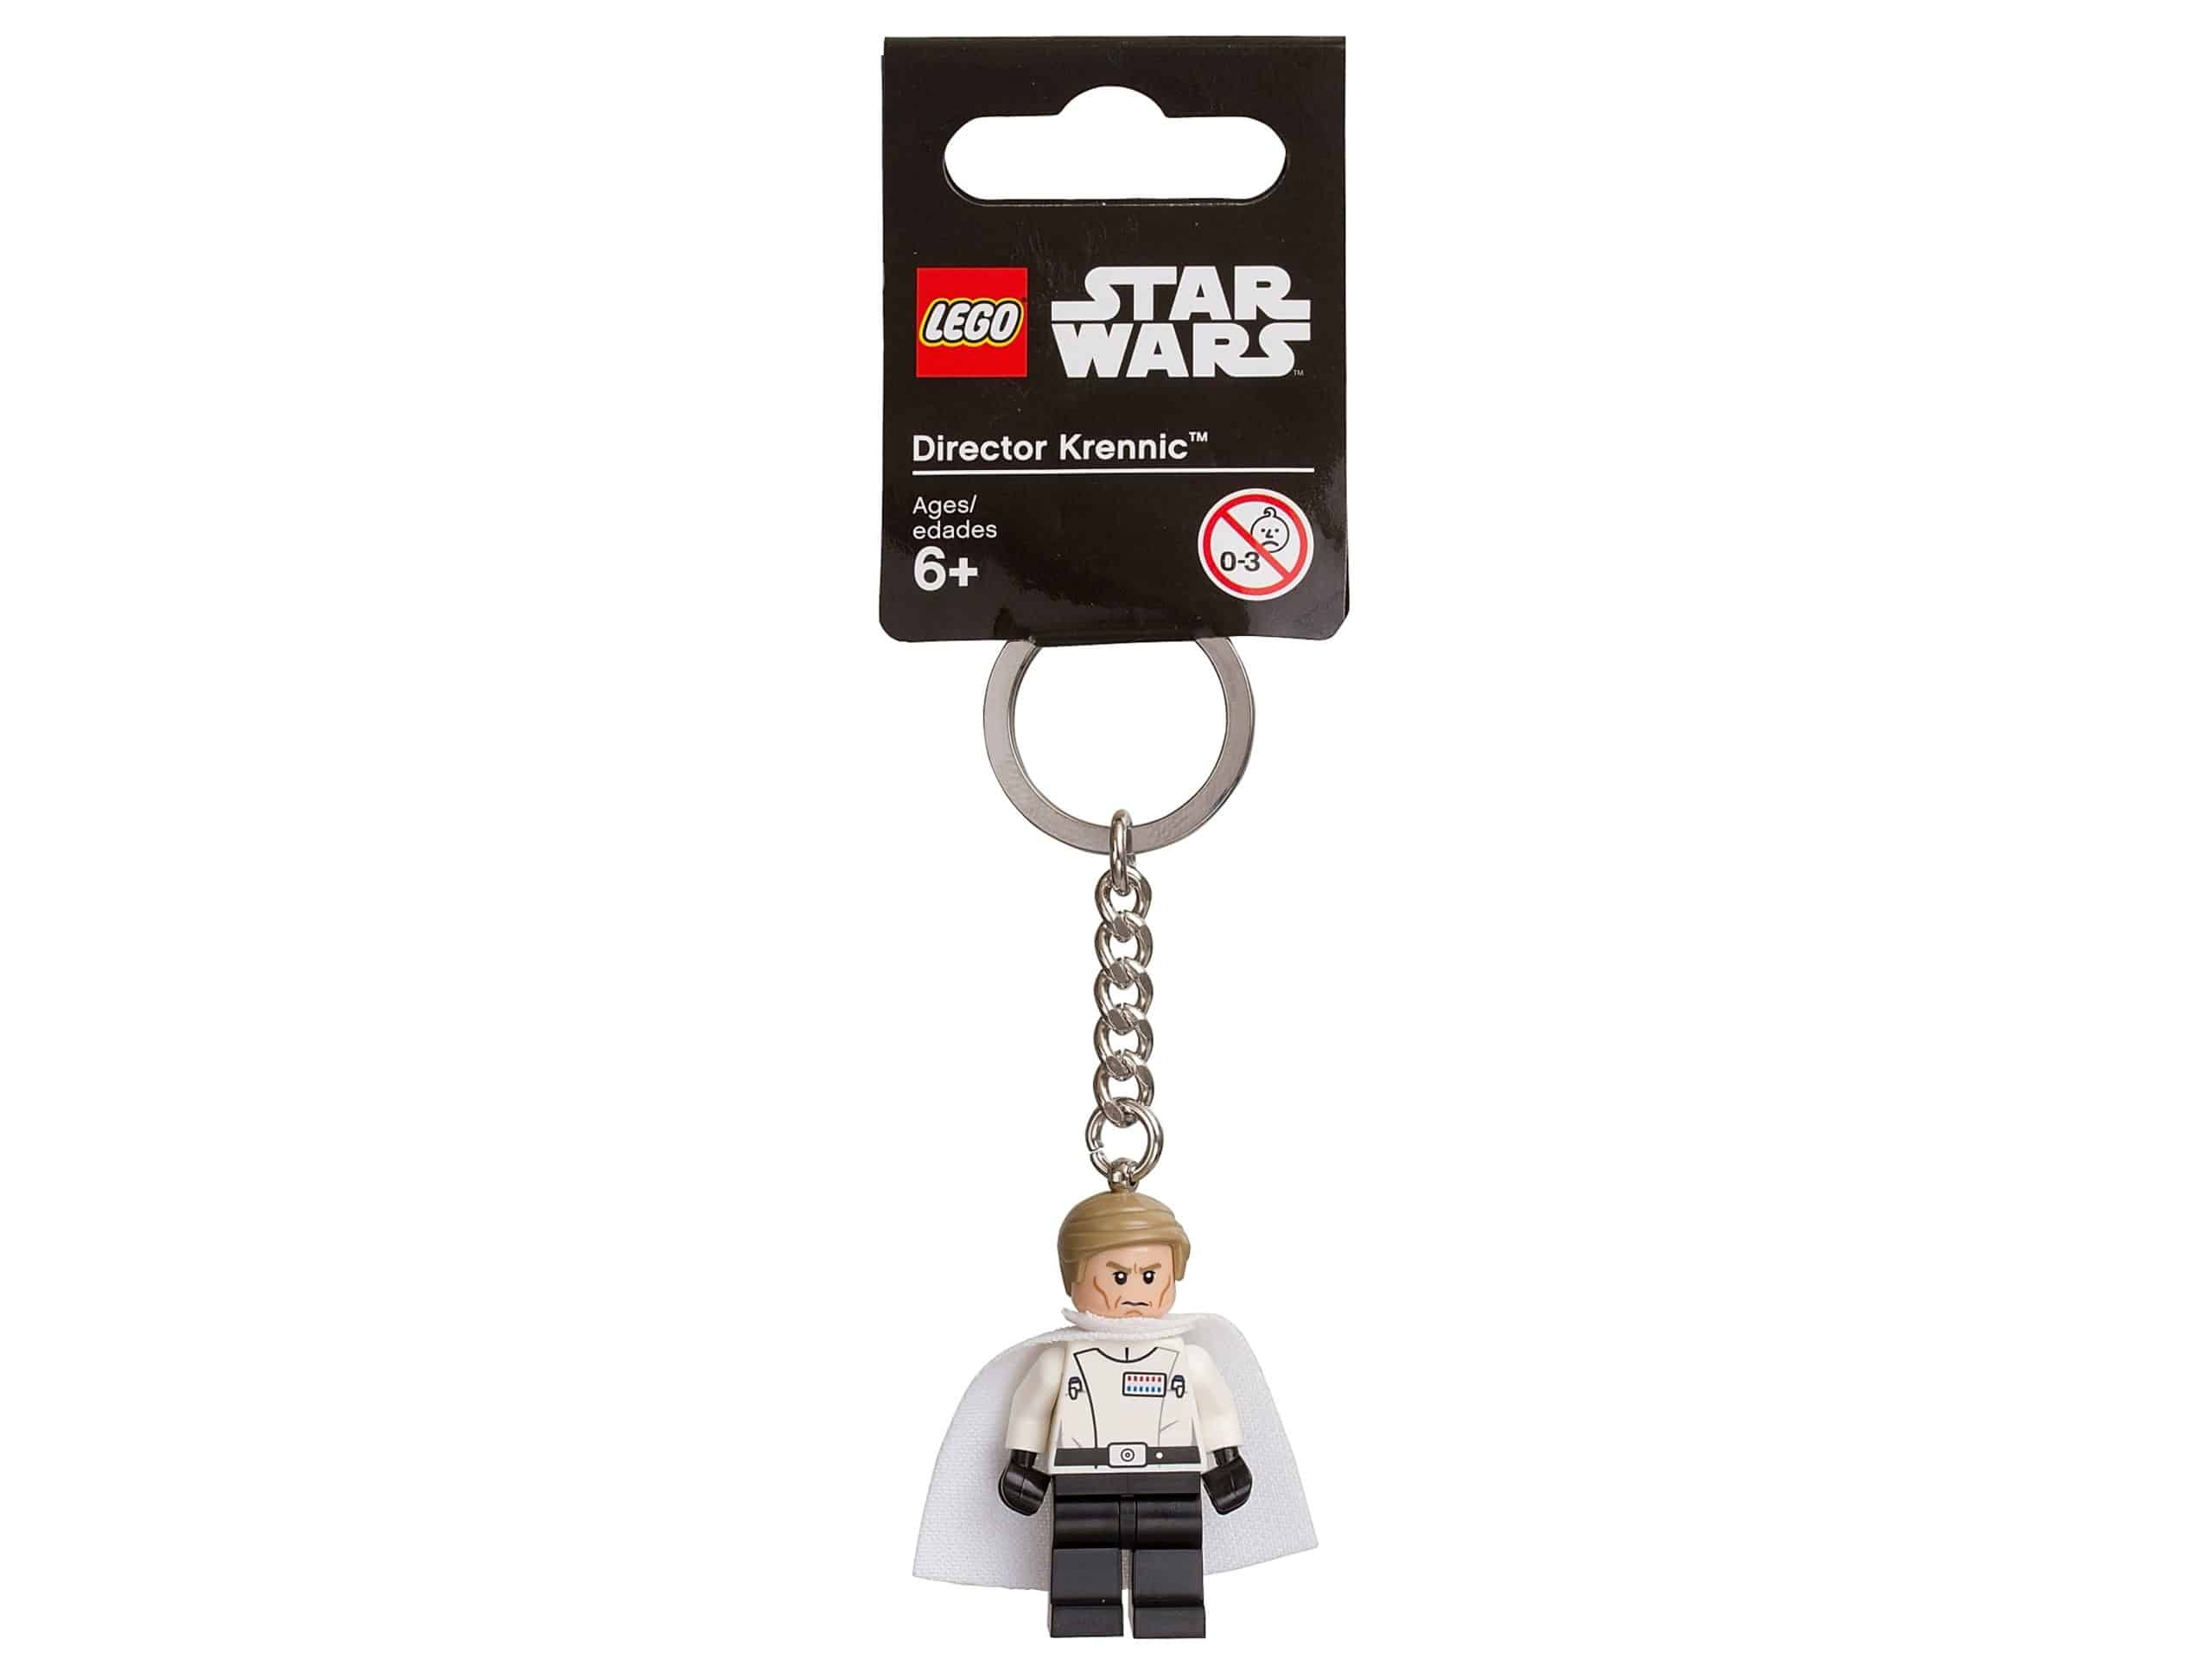 lego 853703 star wars director krennic schlusselanhanger scaled